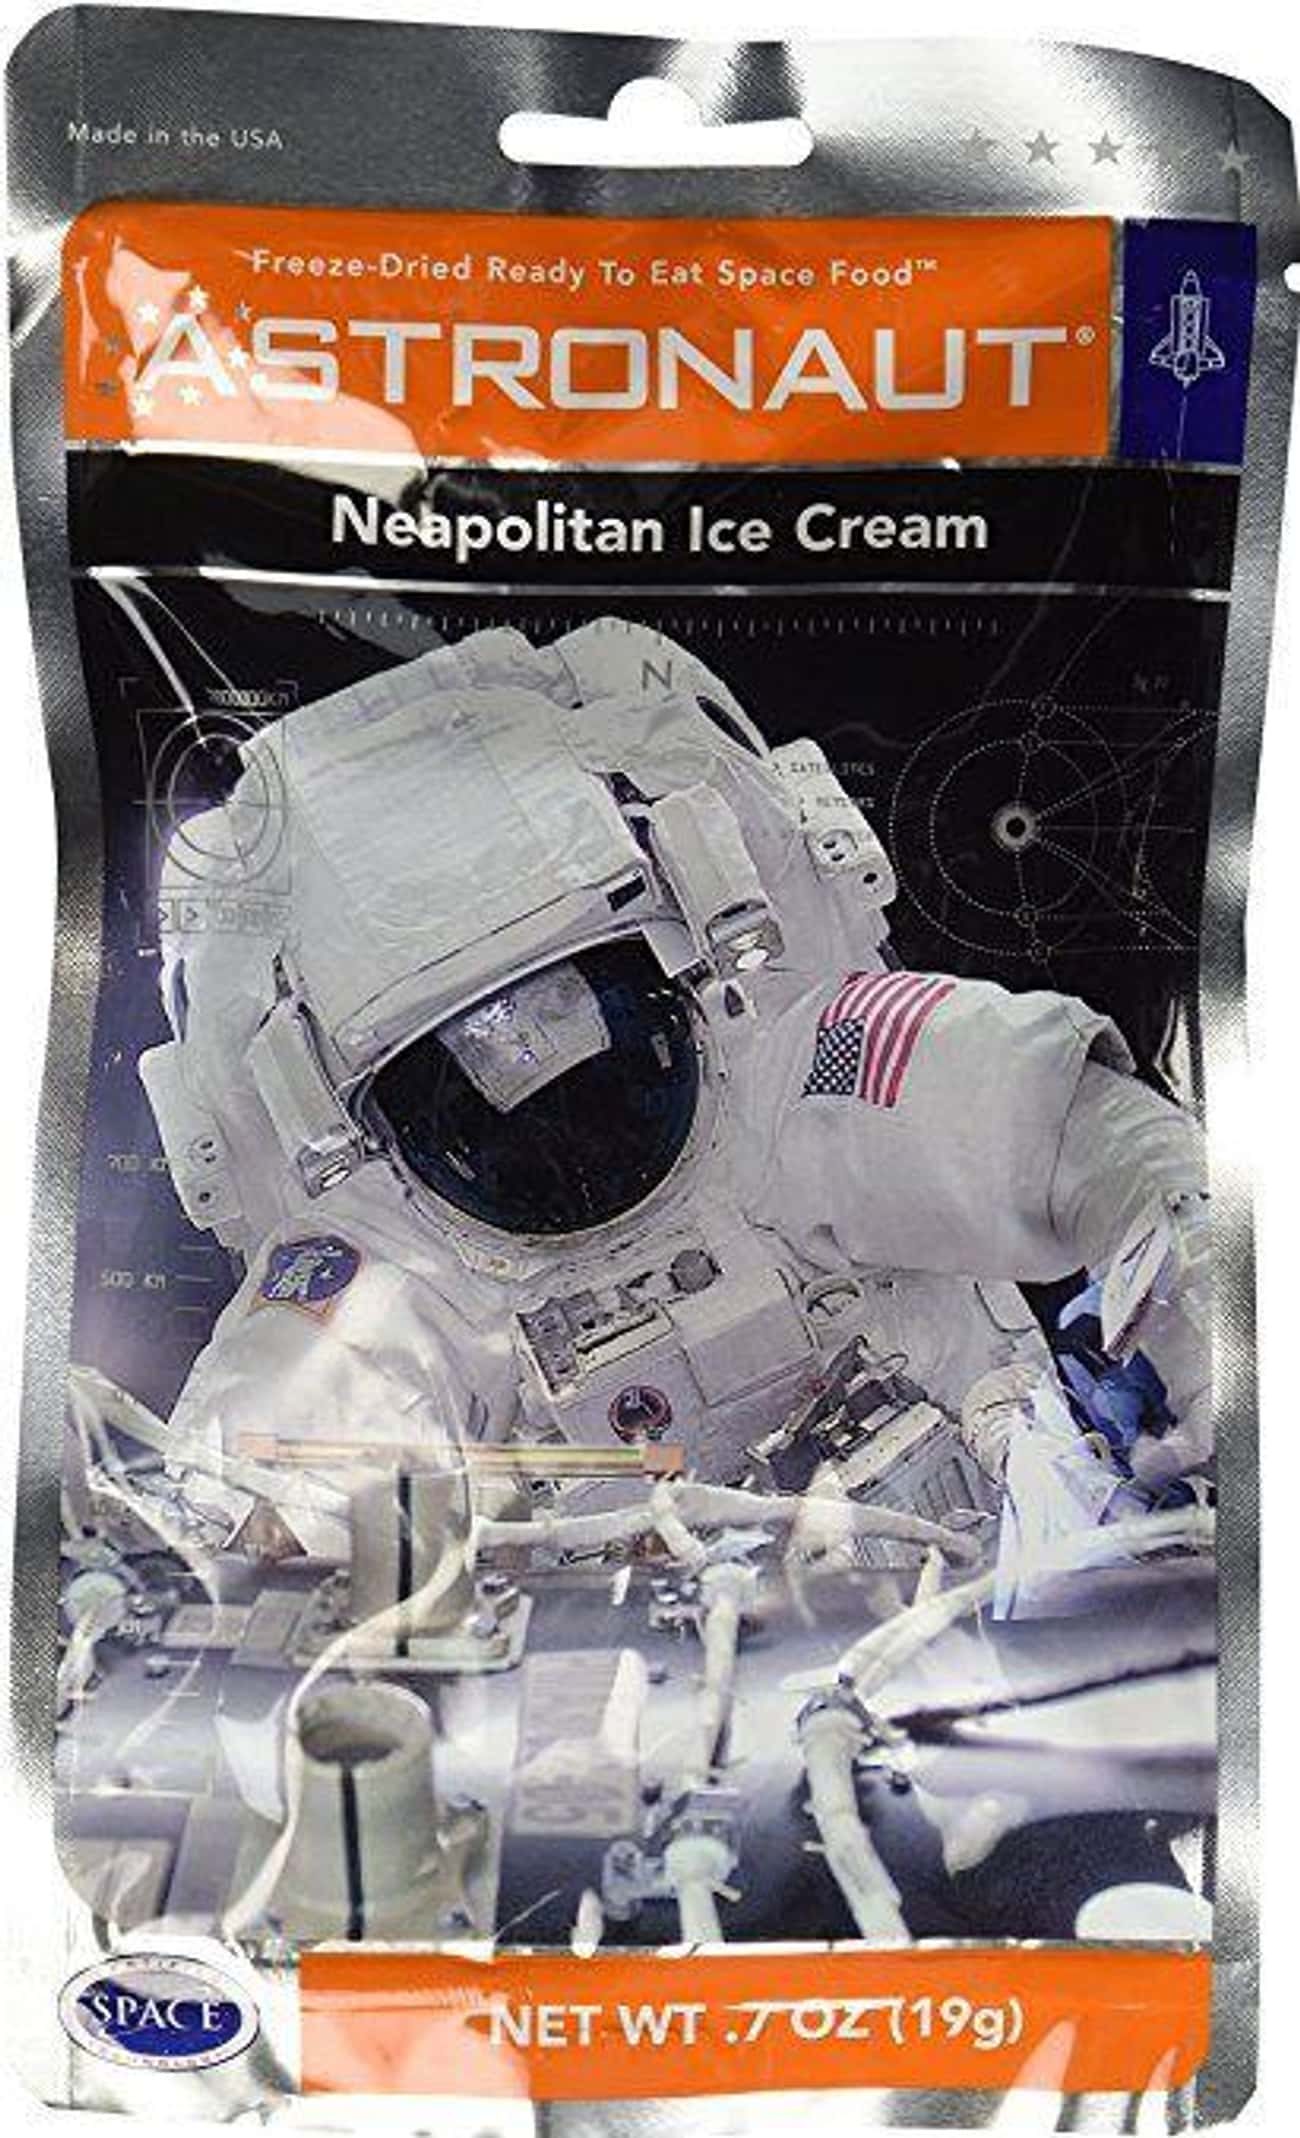 Astronaut Neapolitan Ice Cream is listed (or ranked) 3 on the list Bizarre Candy You Won't Be Able To Find At Your Local Gas Station